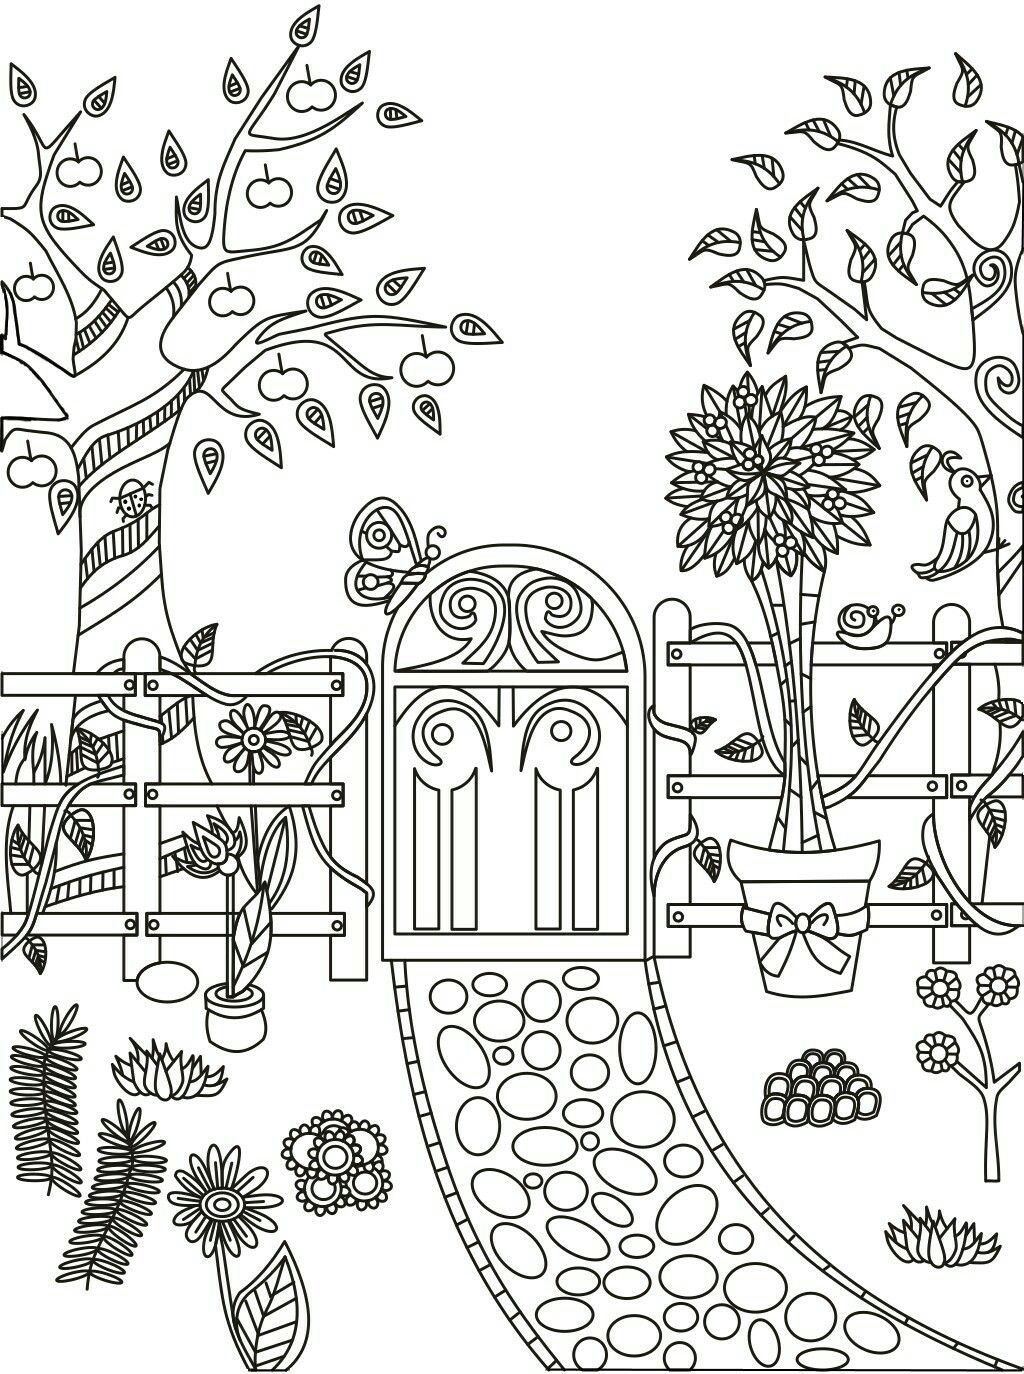 Garden Path Coloring Page Garden Coloring Pages Colorful Garden